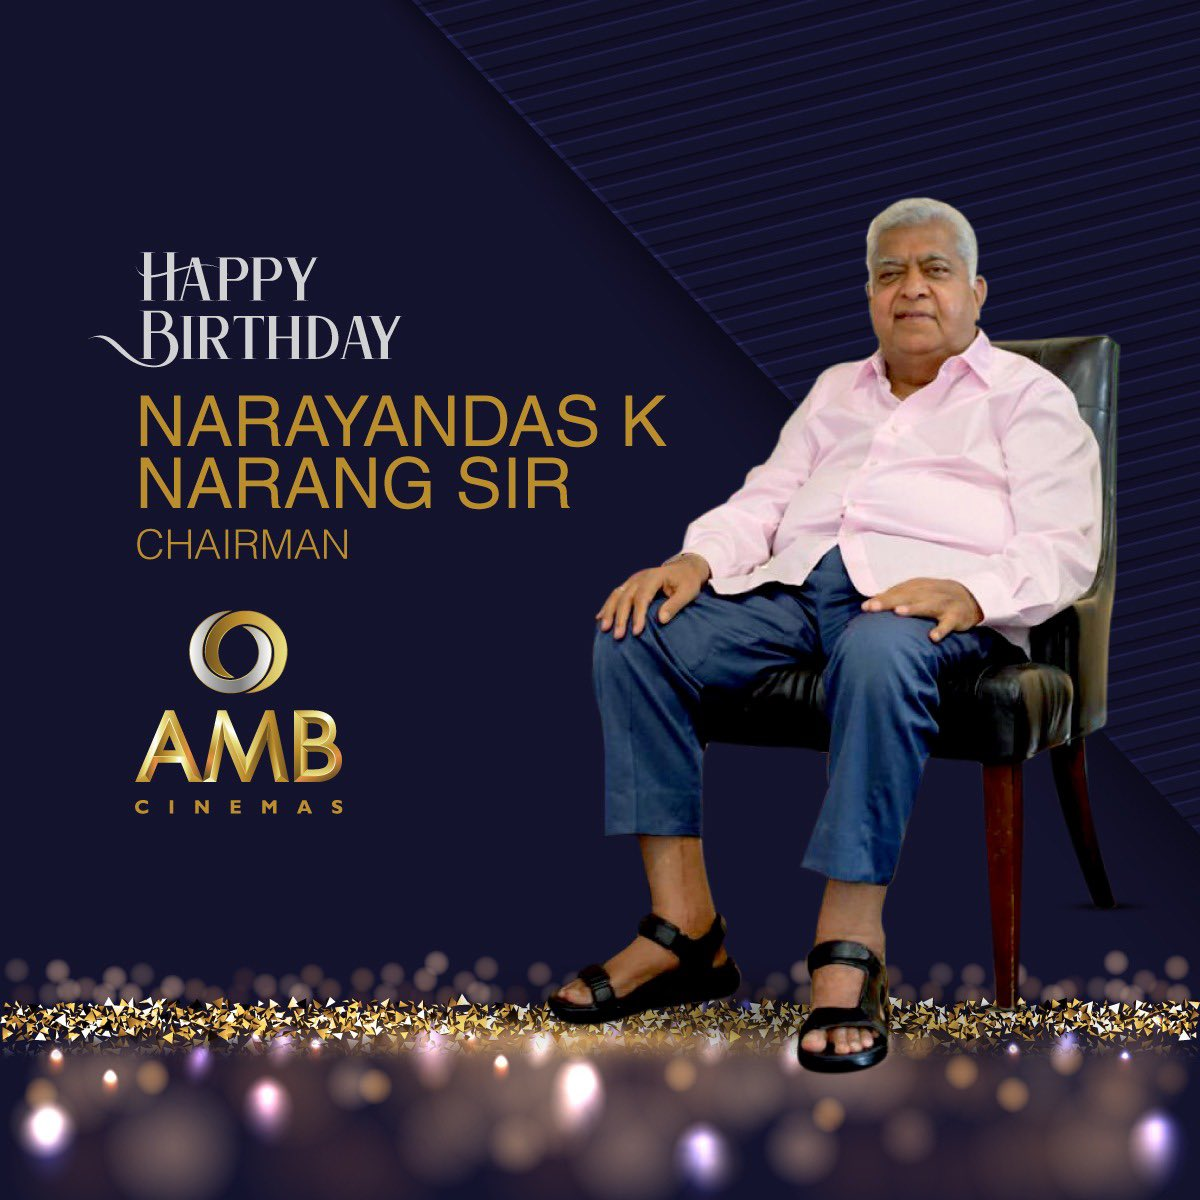 AMB Cinemas wishes our Chairman, Mr. Narayandas K. Narang sir a very Happy Birthday! Thank you sir for bringing world-class movie experience to everyone! 😃 #AMBCinemas #Chairman #NarayandasKNarangsir #HappyBirthday #WorldClass #MovieExperience #MovieMagic #ShowbizzToSuperhits